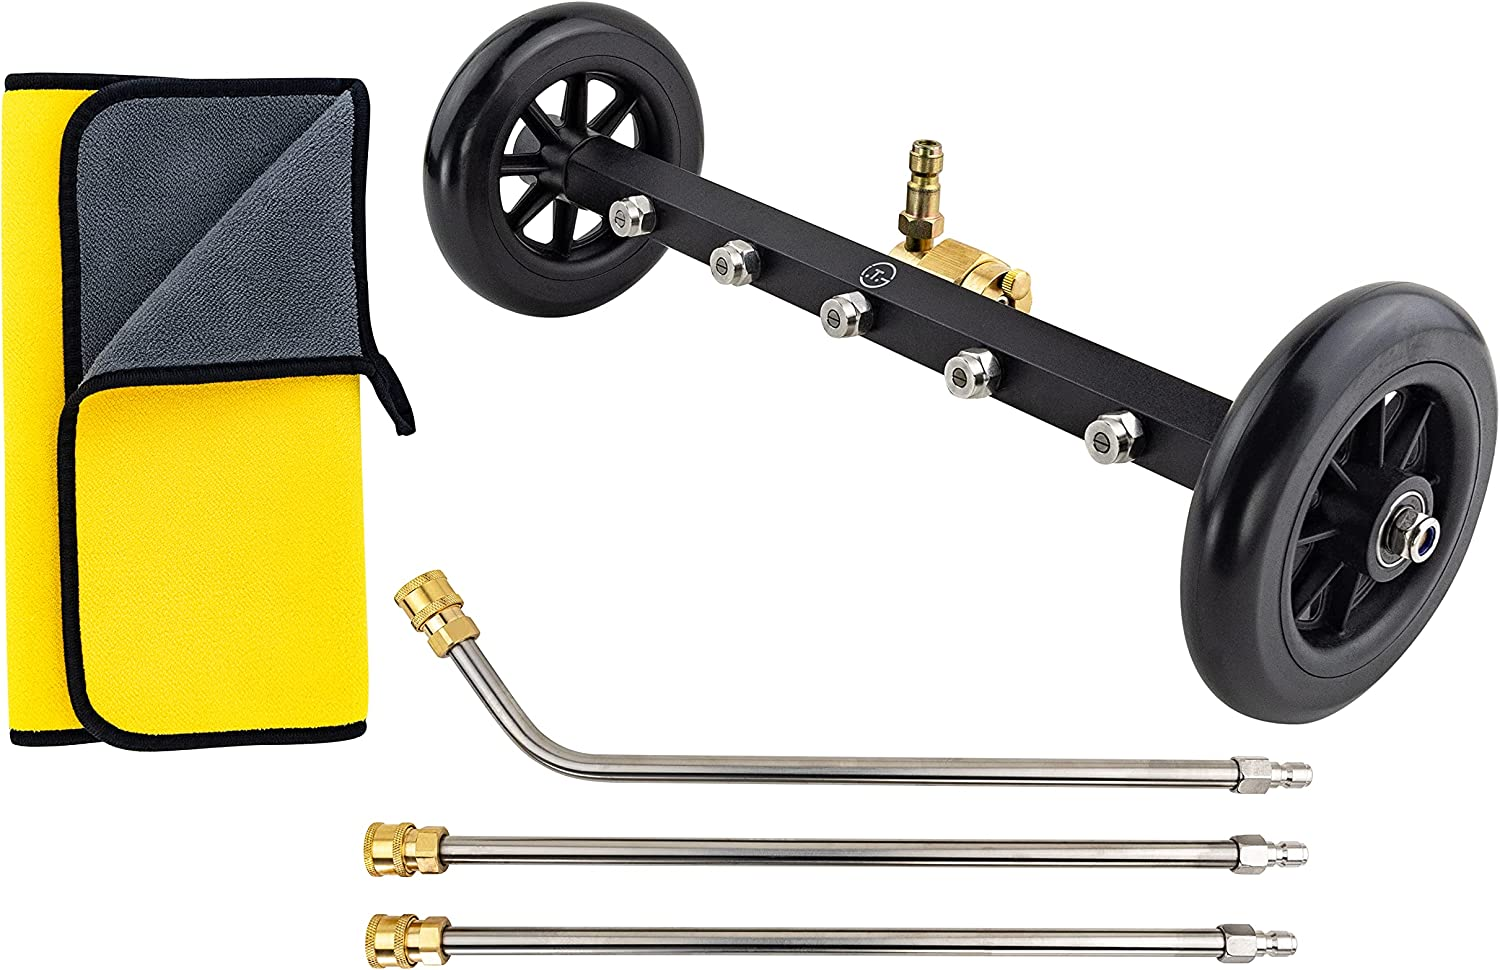 Max 89% OFF Undercarriage Pressure Washer Water Broom Clean free Inch 16 Surface